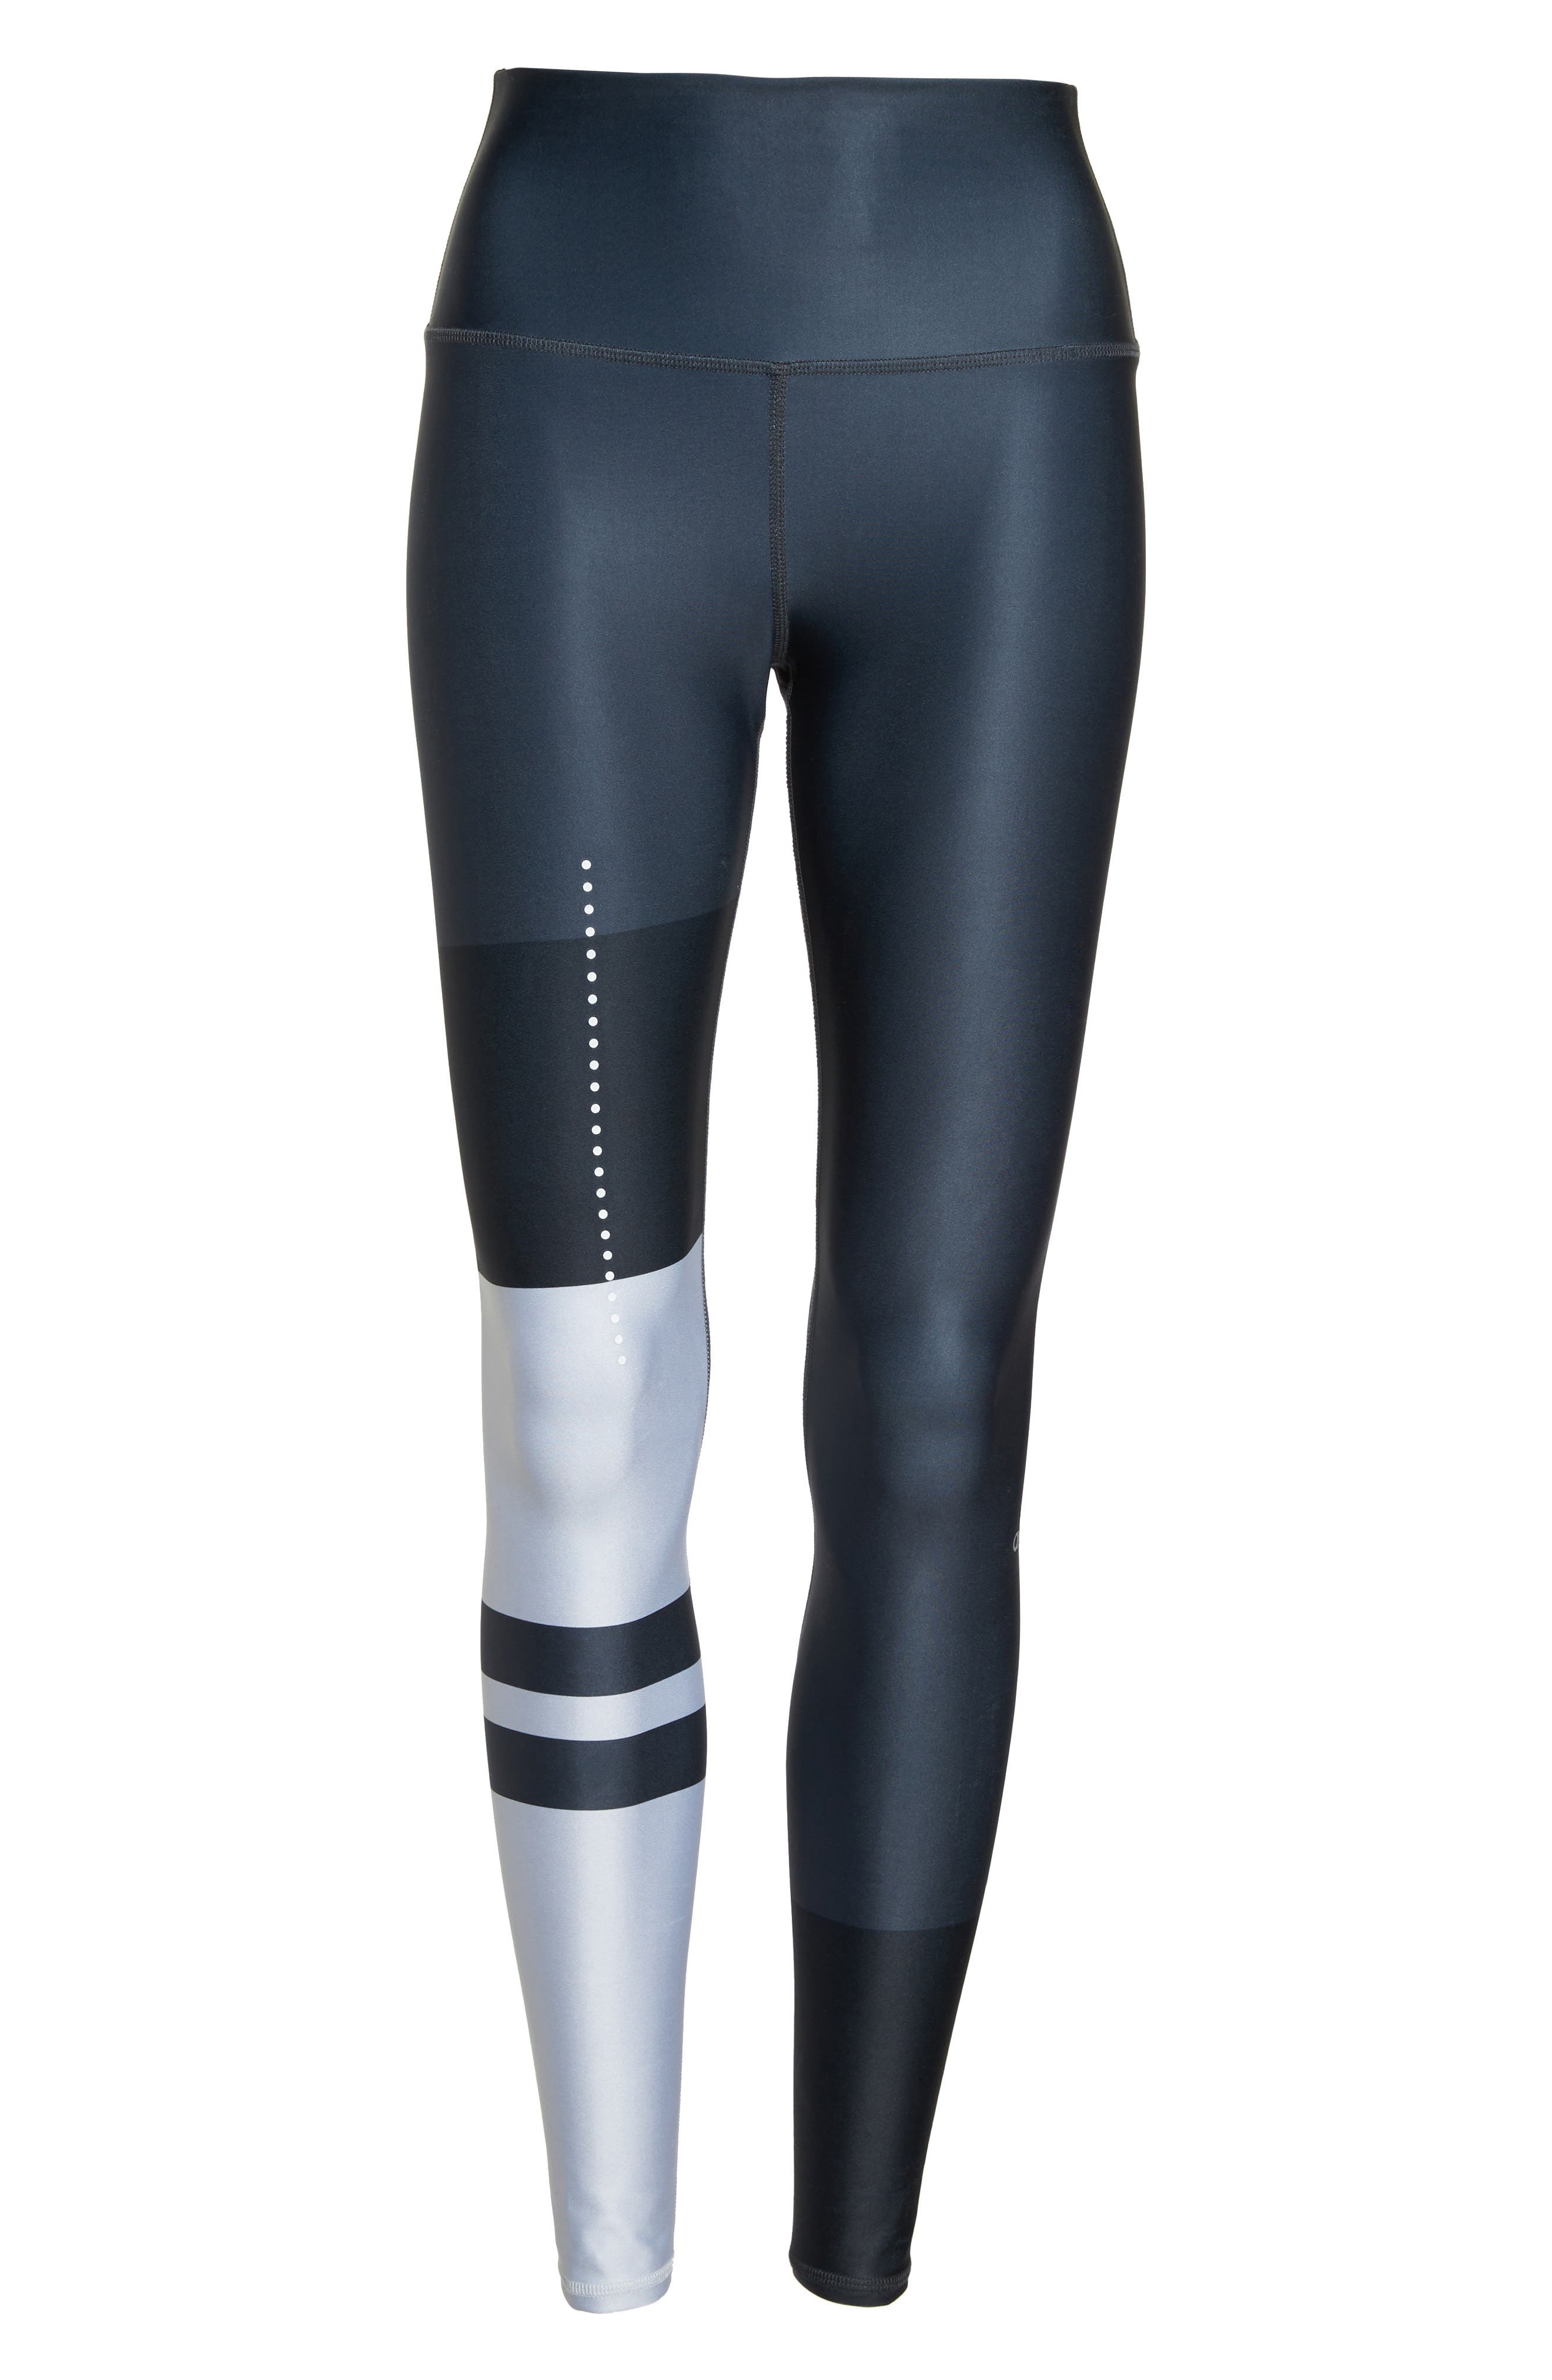 Airbrush High Waist Leggings,                             Alternate thumbnail 7, color,                             ANTHRACITE ZENITH